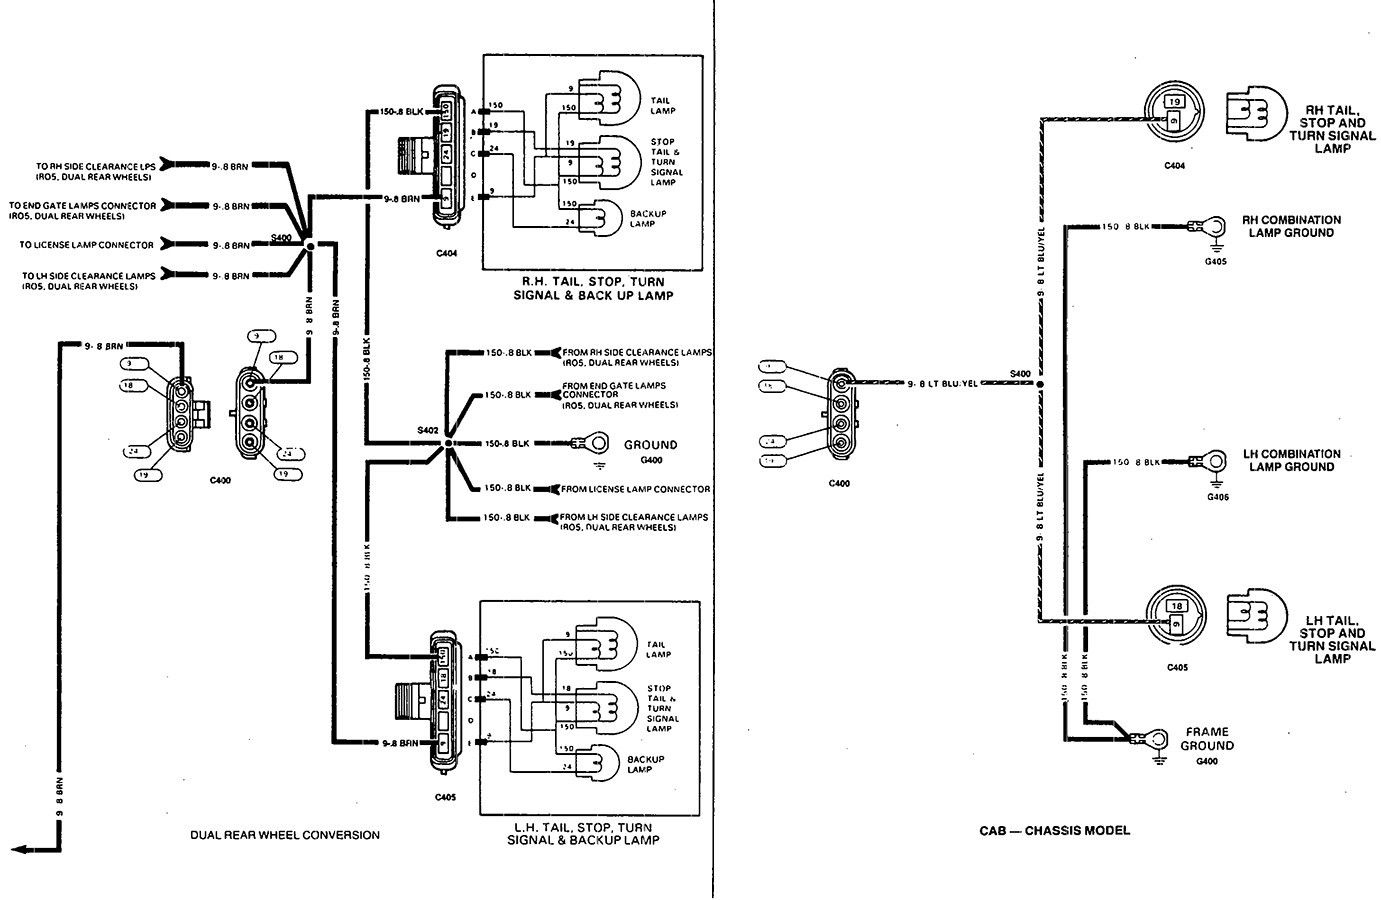 2003 Trailblazer Tail Light Circuit Diagram Awesome in